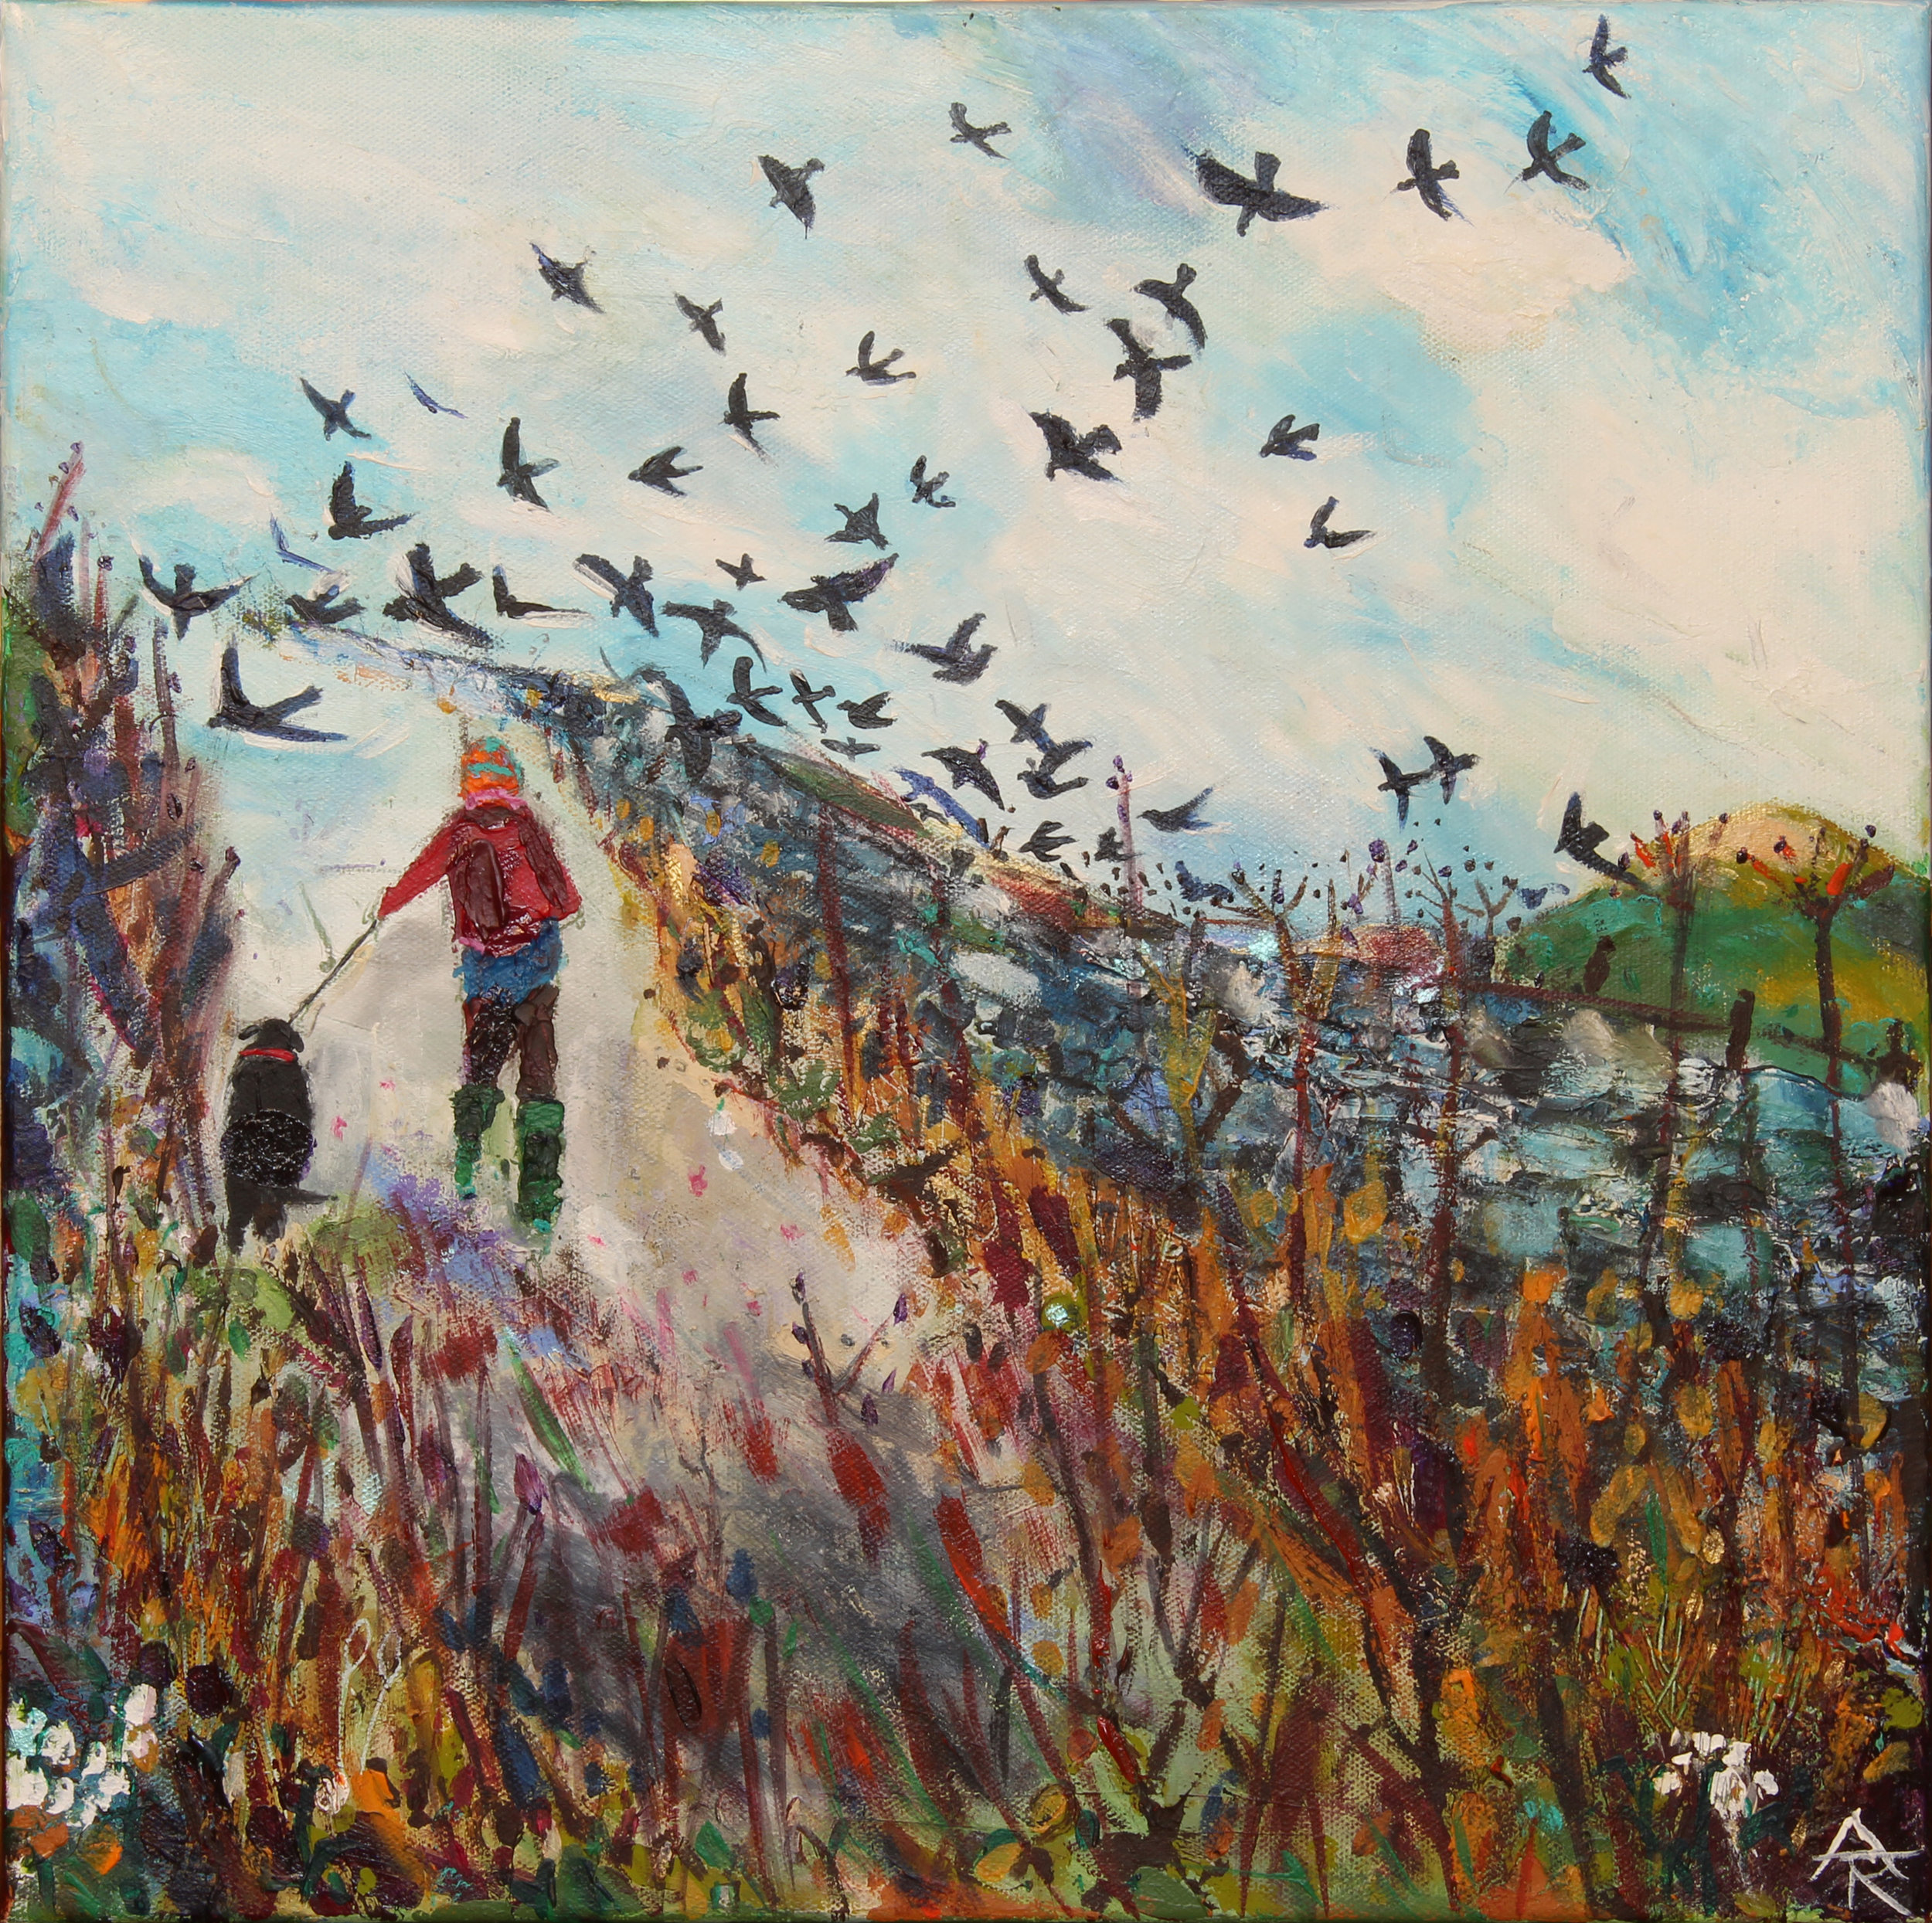 From Over The Wall The Starlings Swooped, acrylic on canvas, 46 x 46 cm